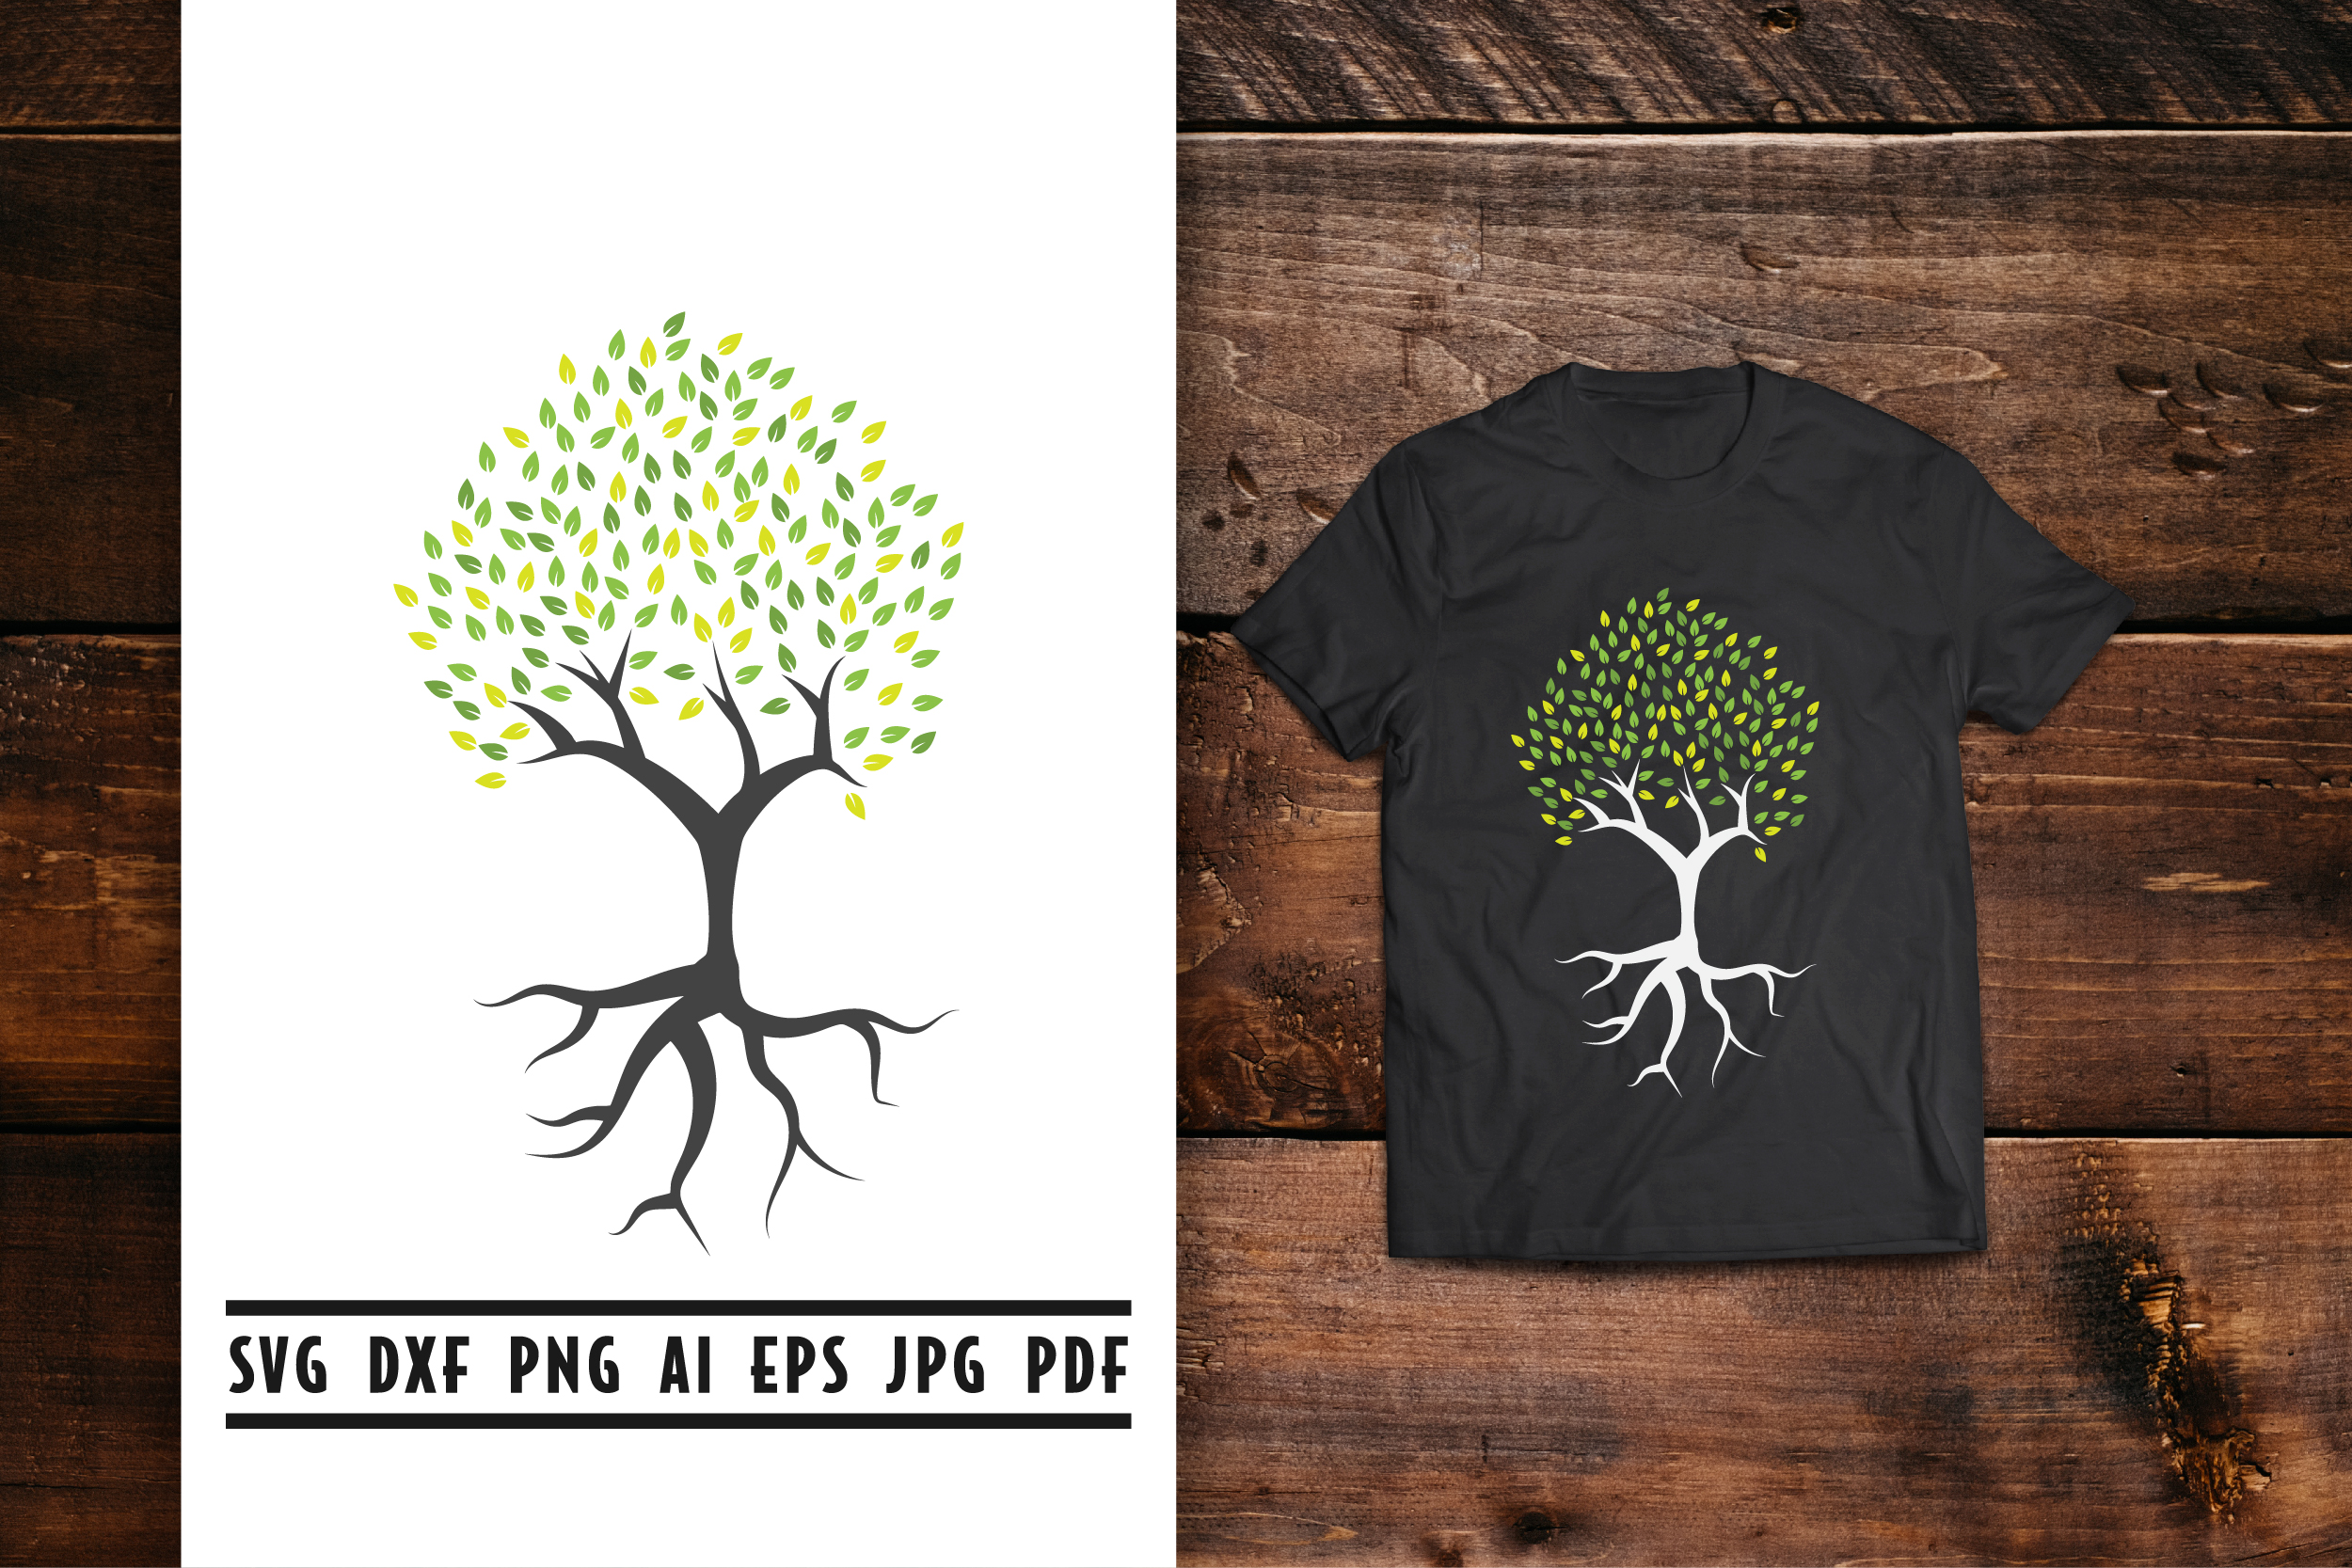 Download Free Tree Graphic By Vectorbundles Creative Fabrica for Cricut Explore, Silhouette and other cutting machines.